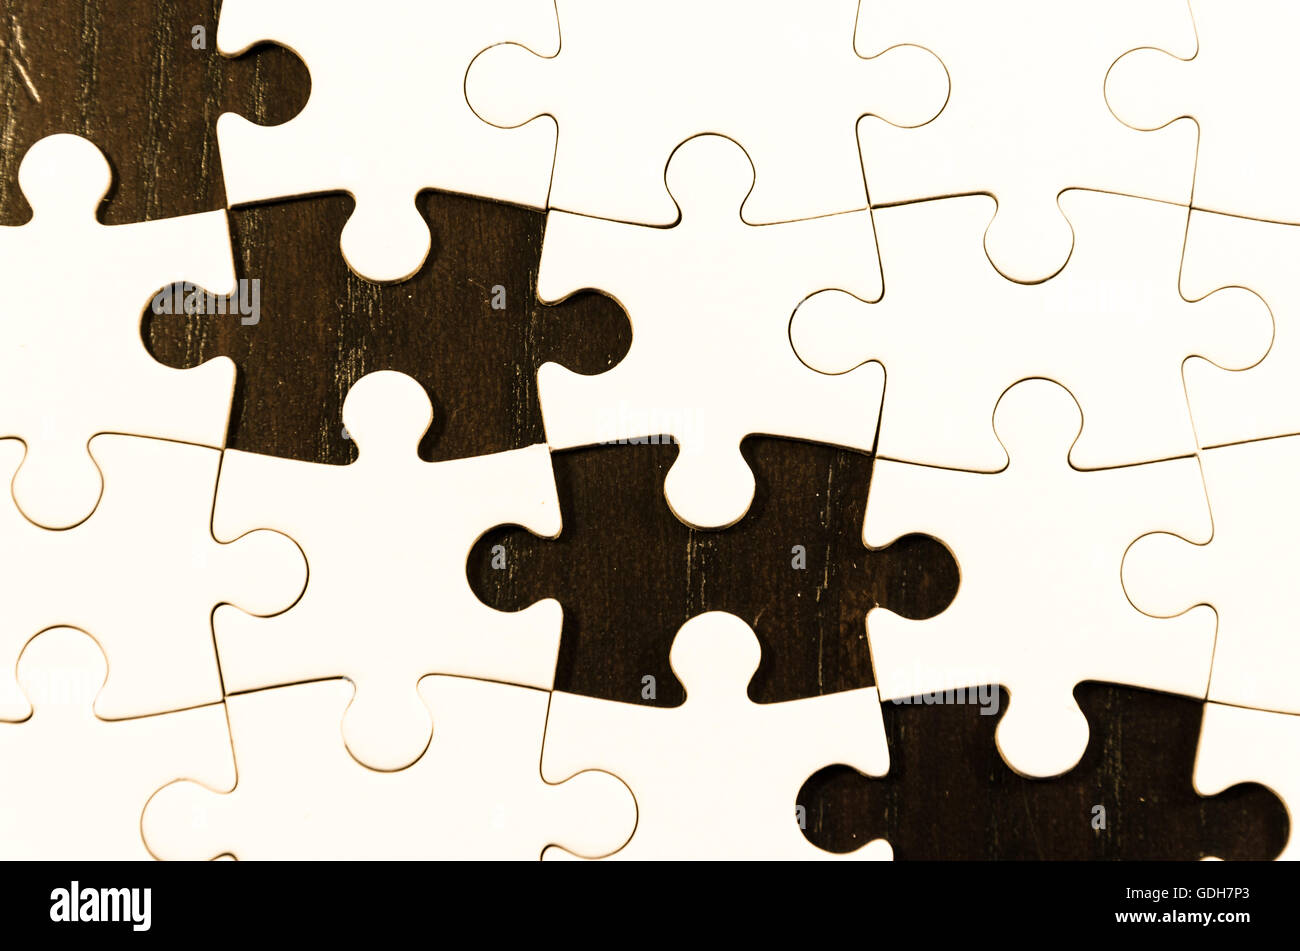 white jigsaw/puzzle white some gaps over  black wooden table background, symbol of problem solving - Stock Image